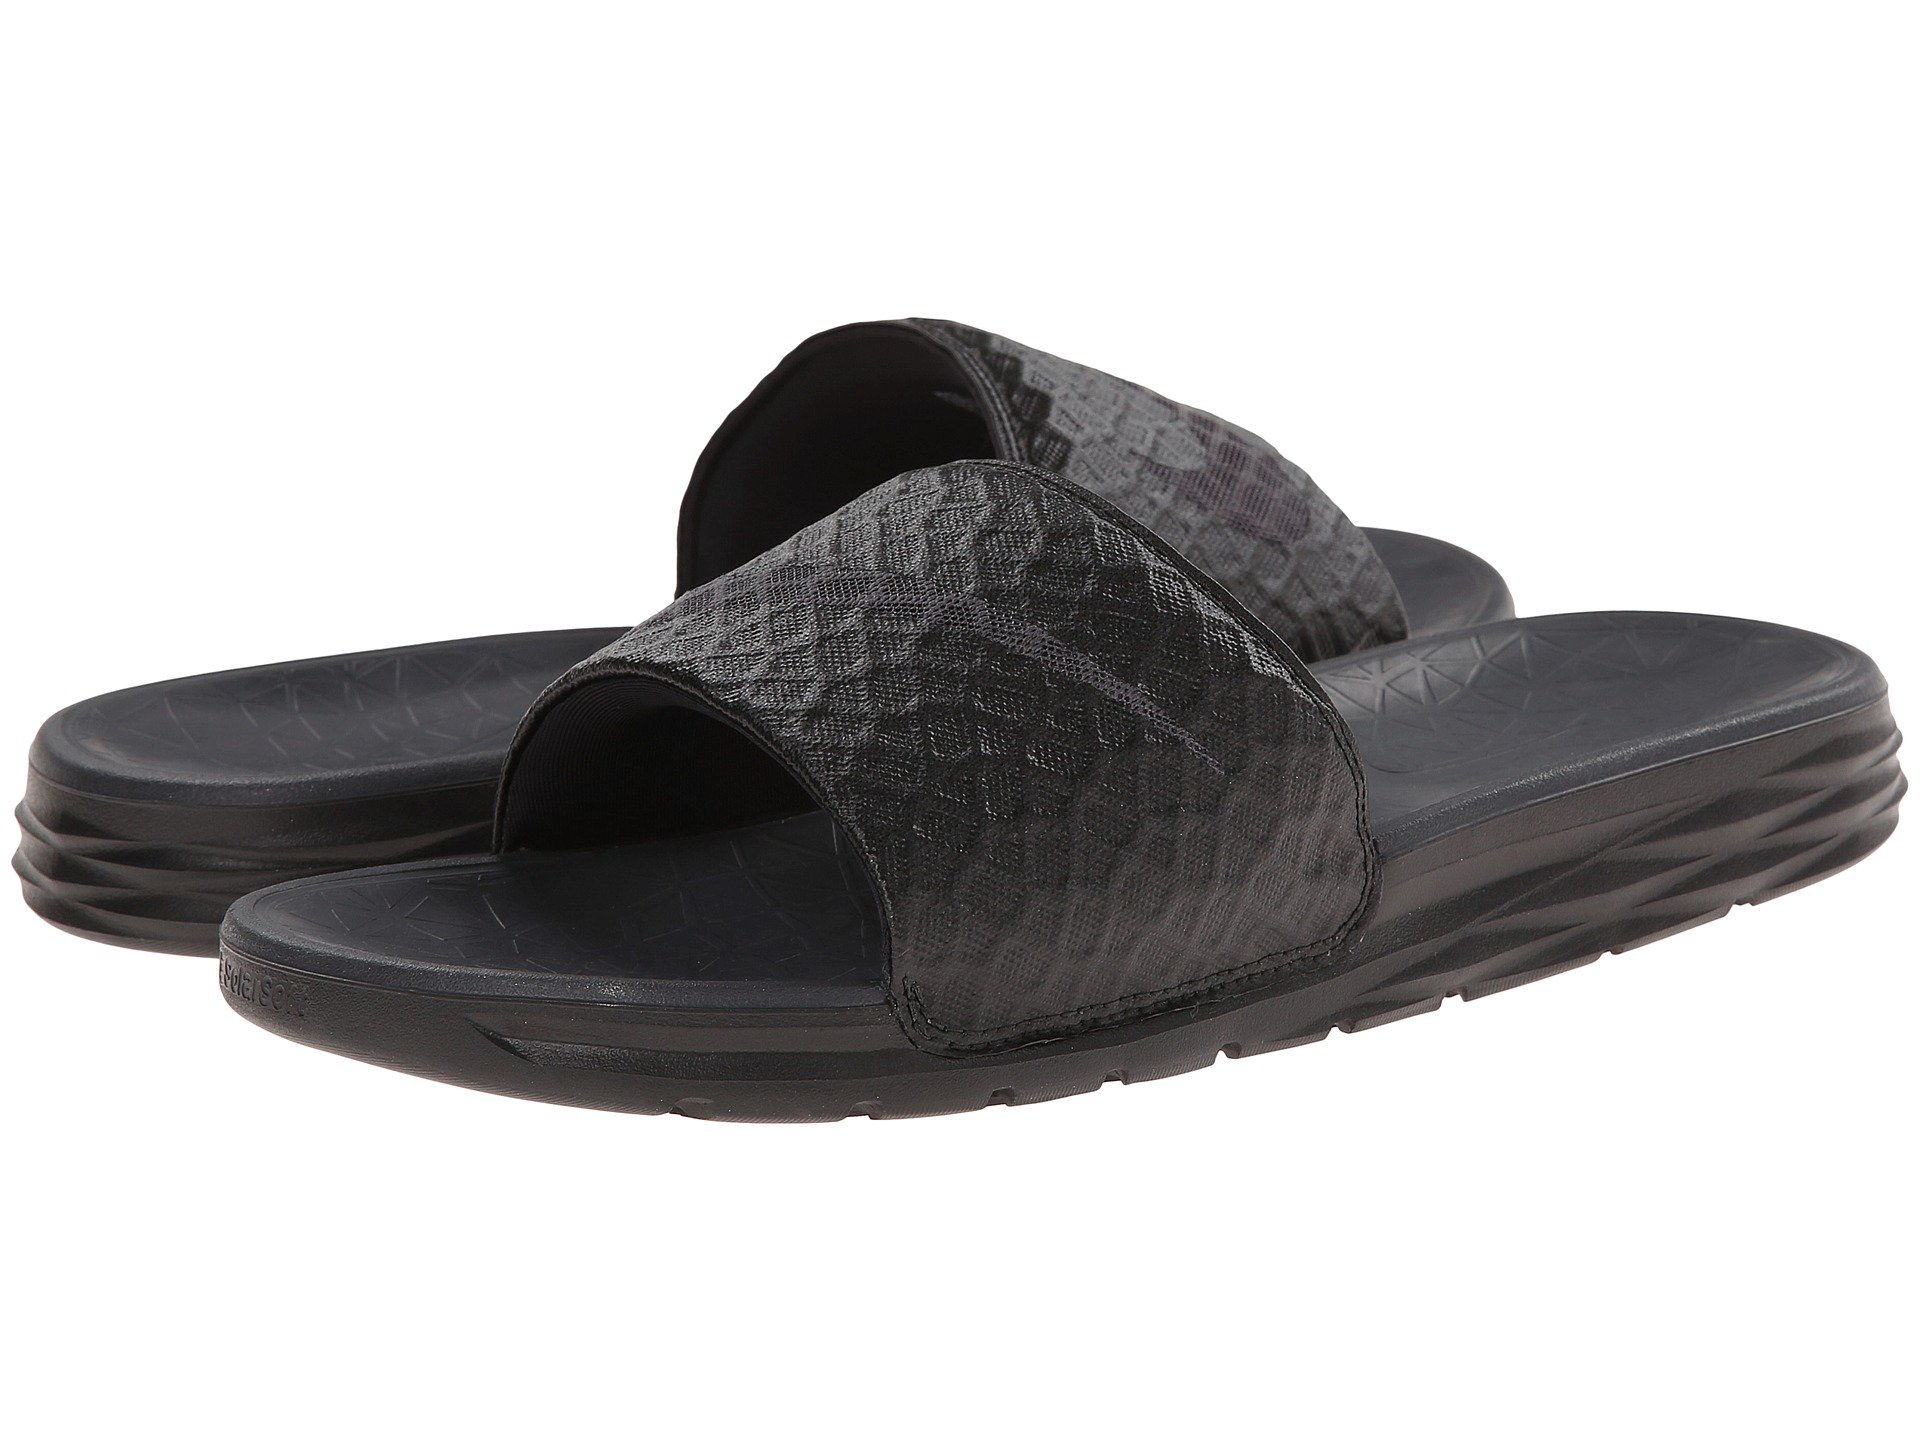 0aa0a519f Black Anthracite. 932. Nike. Benassi Solarsoft Slide 2